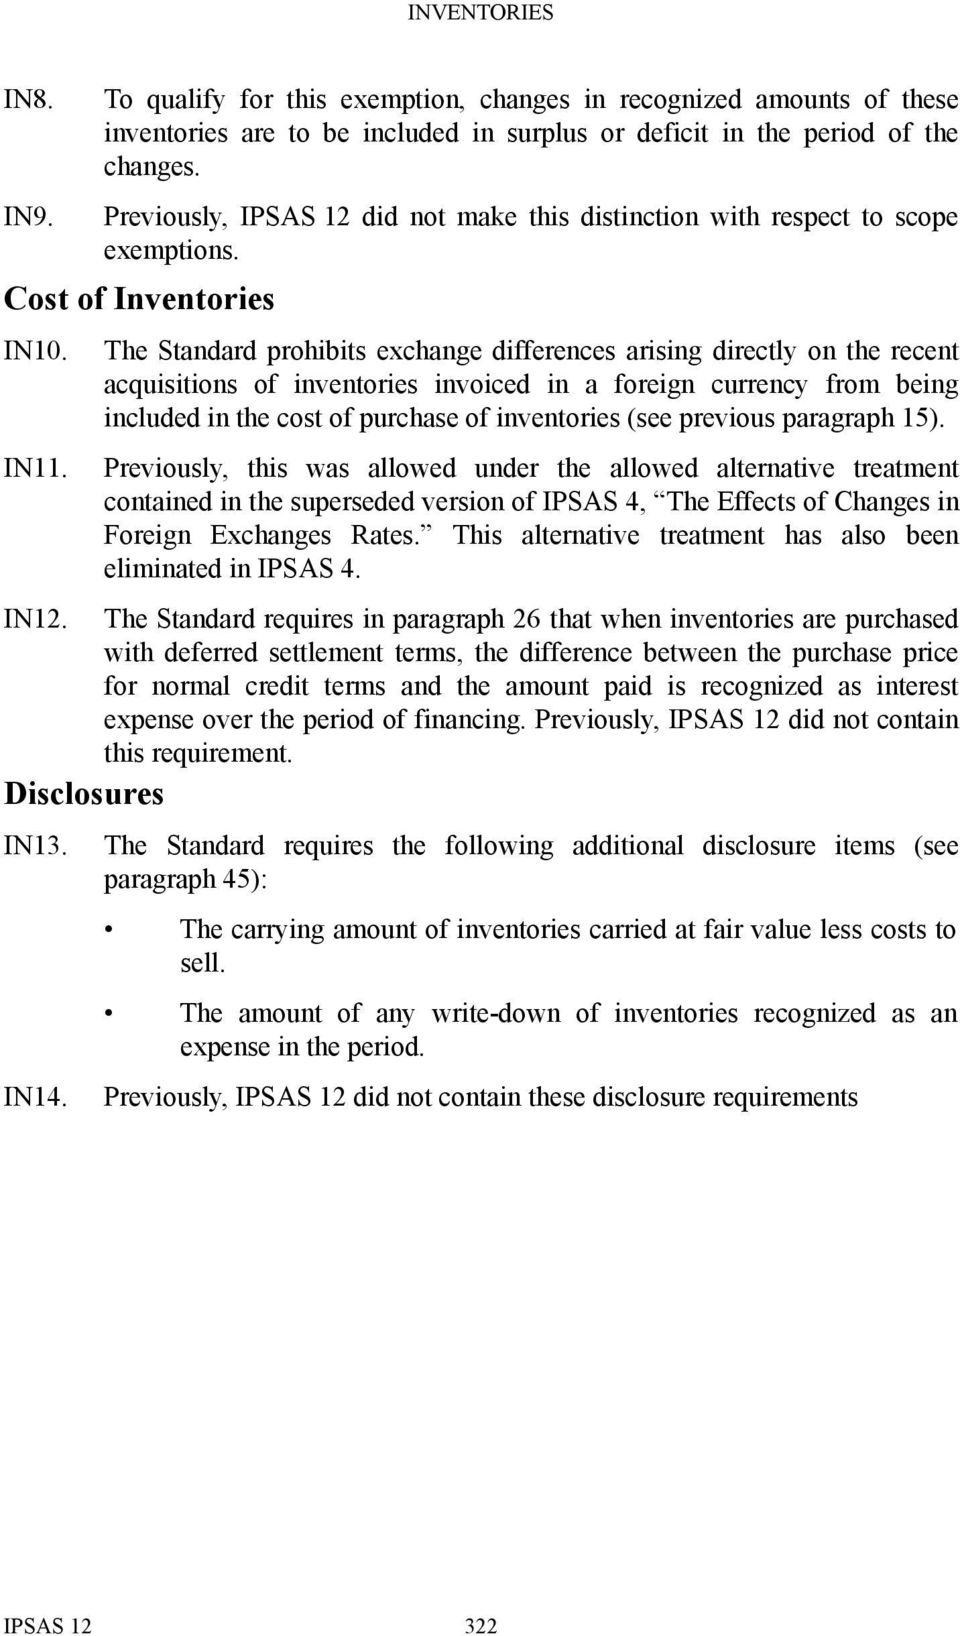 The Standard prohibits exchange differences arising directly on the recent acquisitions of inventories invoiced in a foreign currency from being included in the cost of purchase of inventories (see